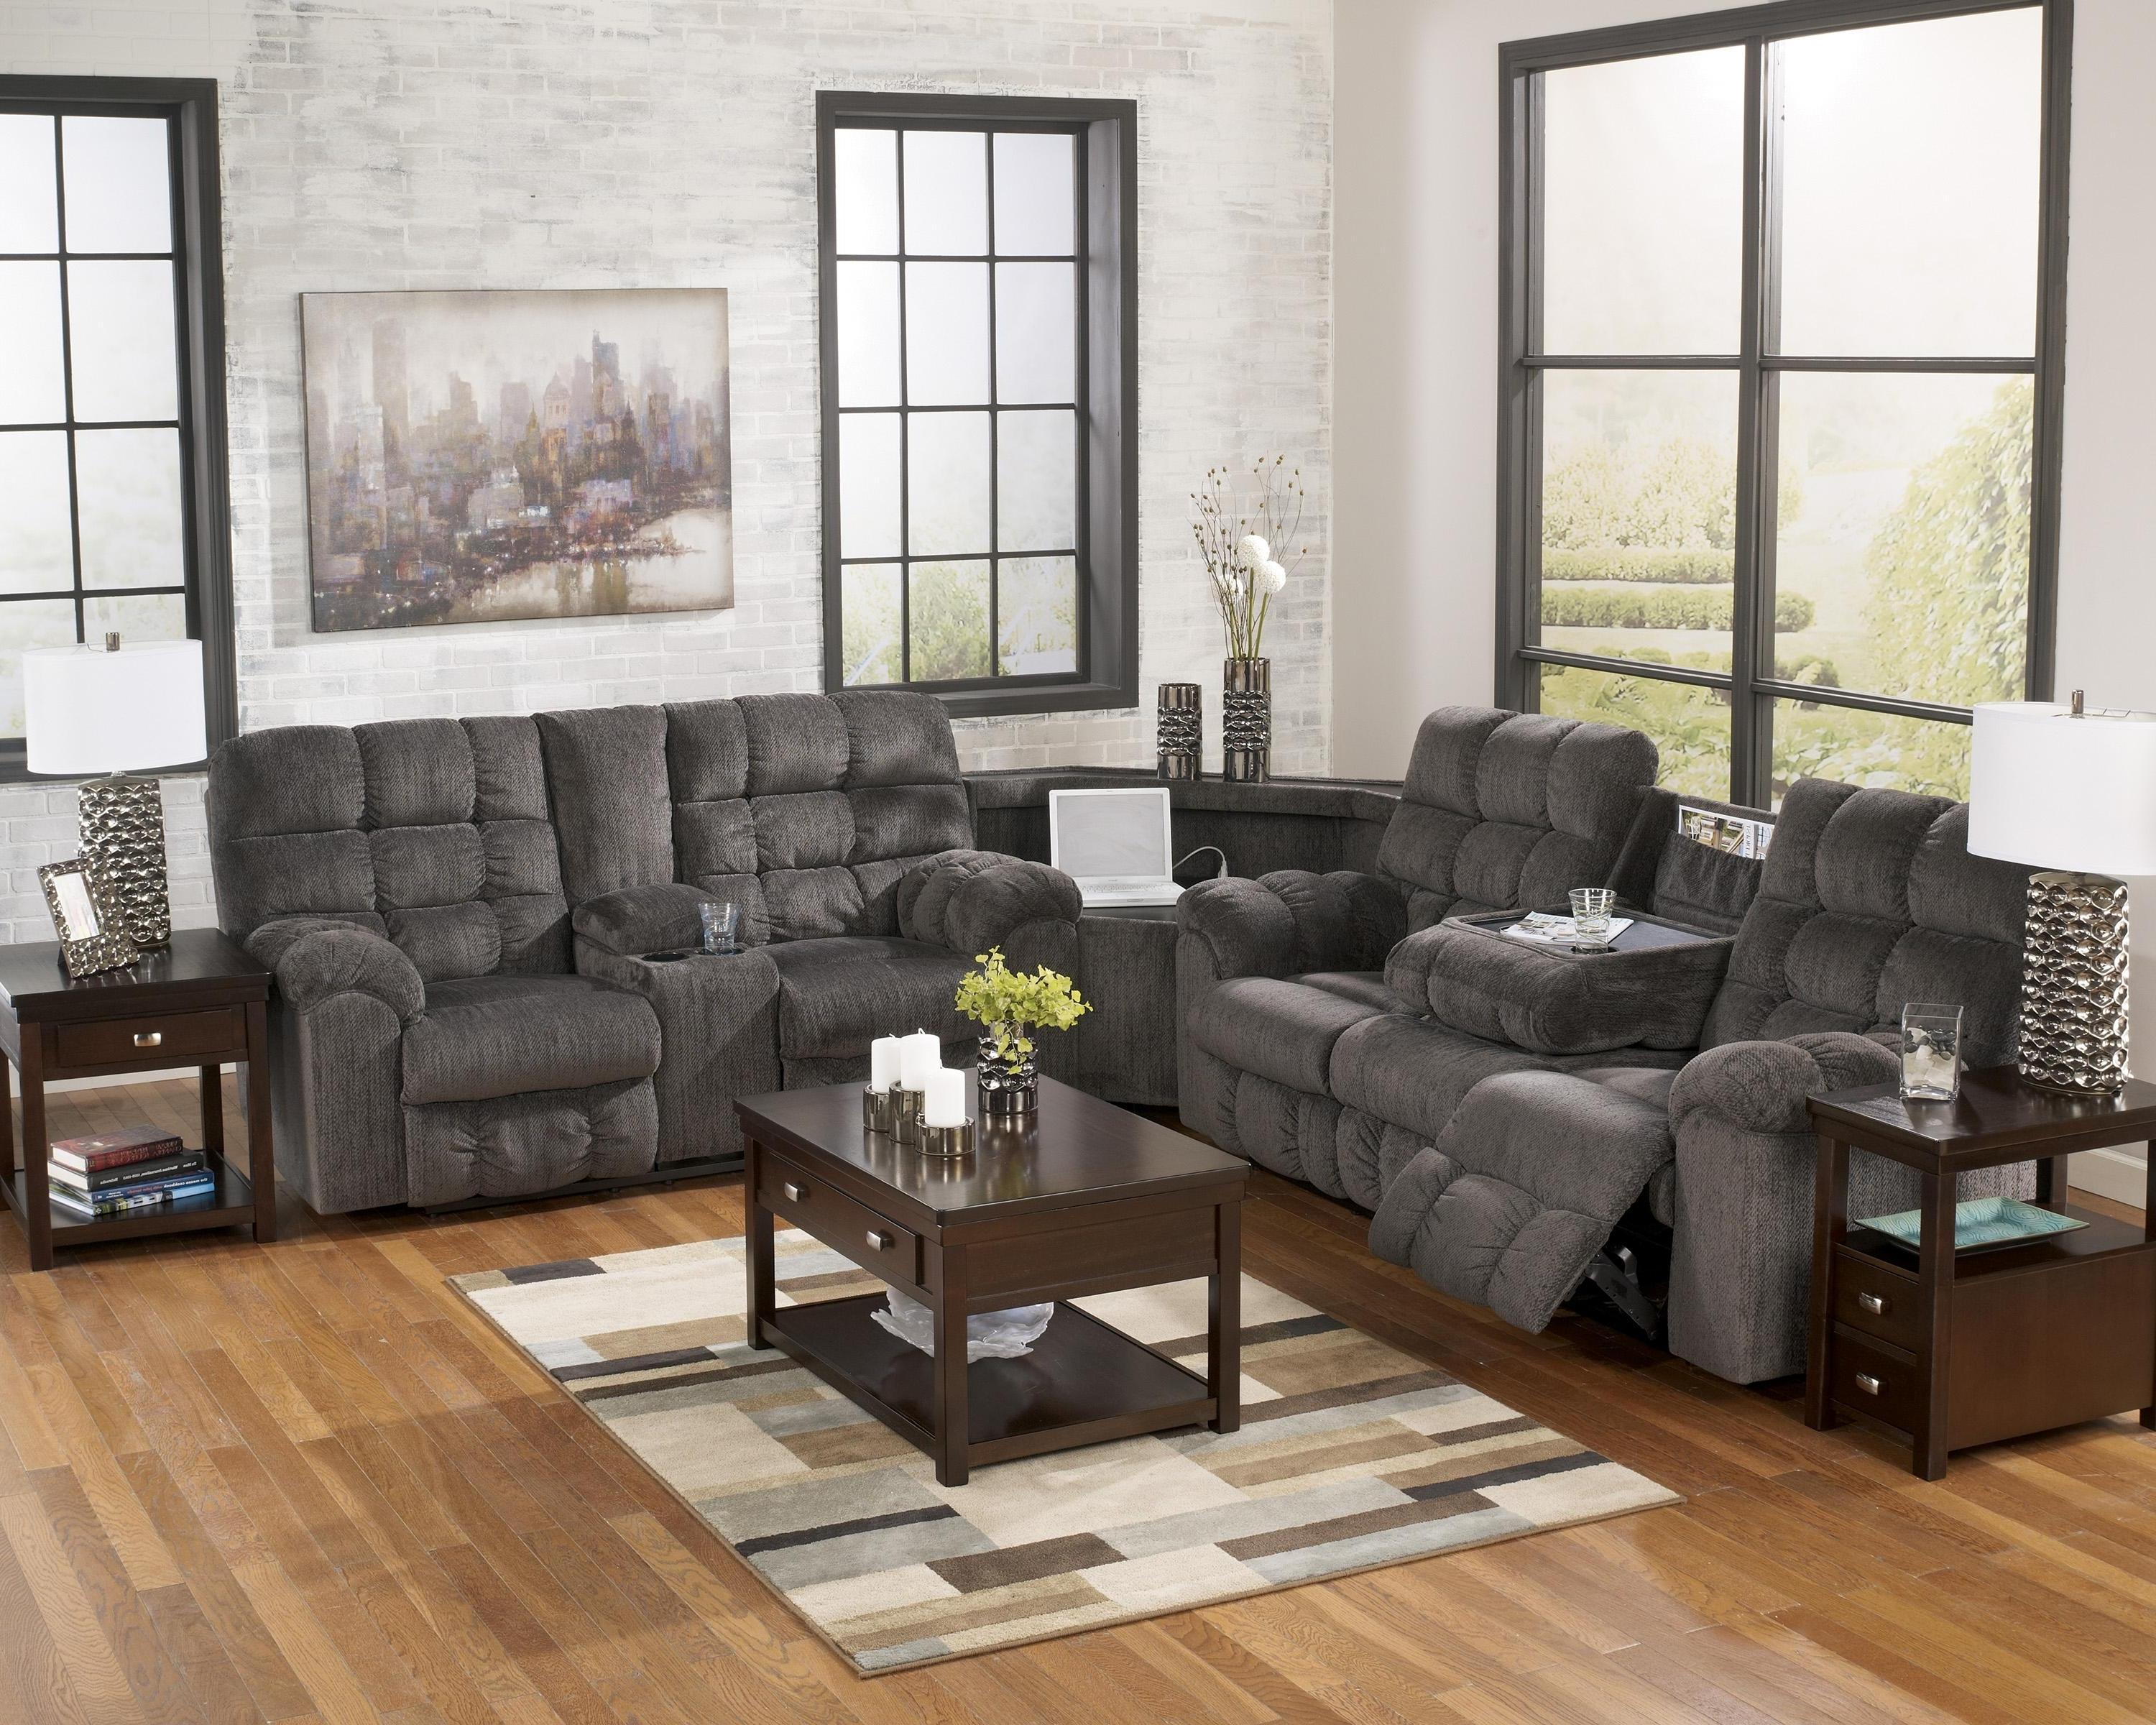 Fashionable Las Vegas Sectional Sofas Intended For Reclining Sectional Sofa With Right Side Loveseat, Cup Holders And (View 3 of 15)